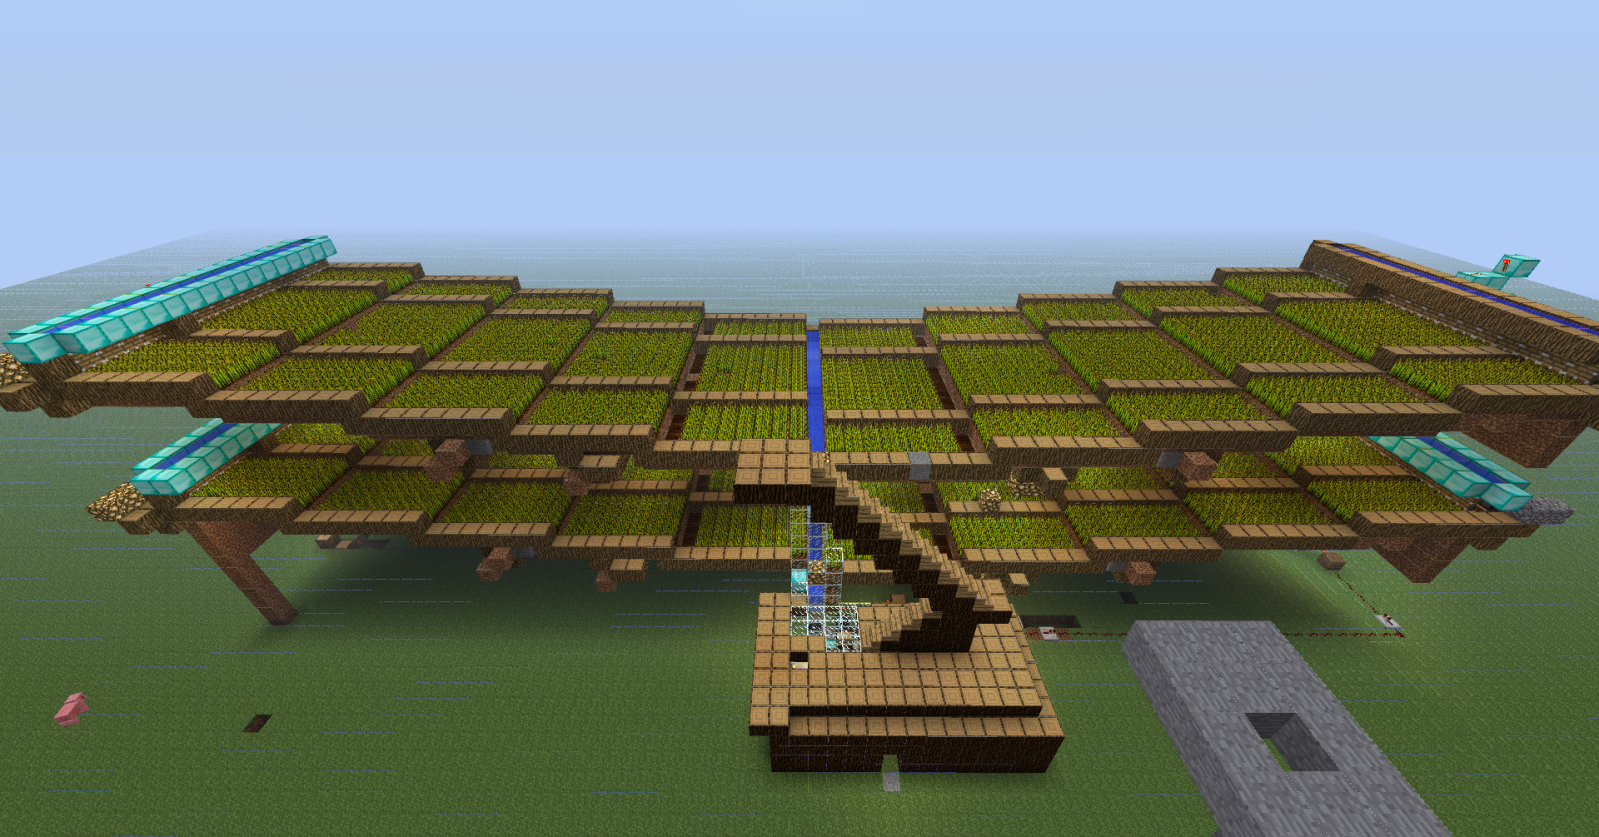 Massive Automatic Minecraft Wheat Farm! - Maps - Mapping and